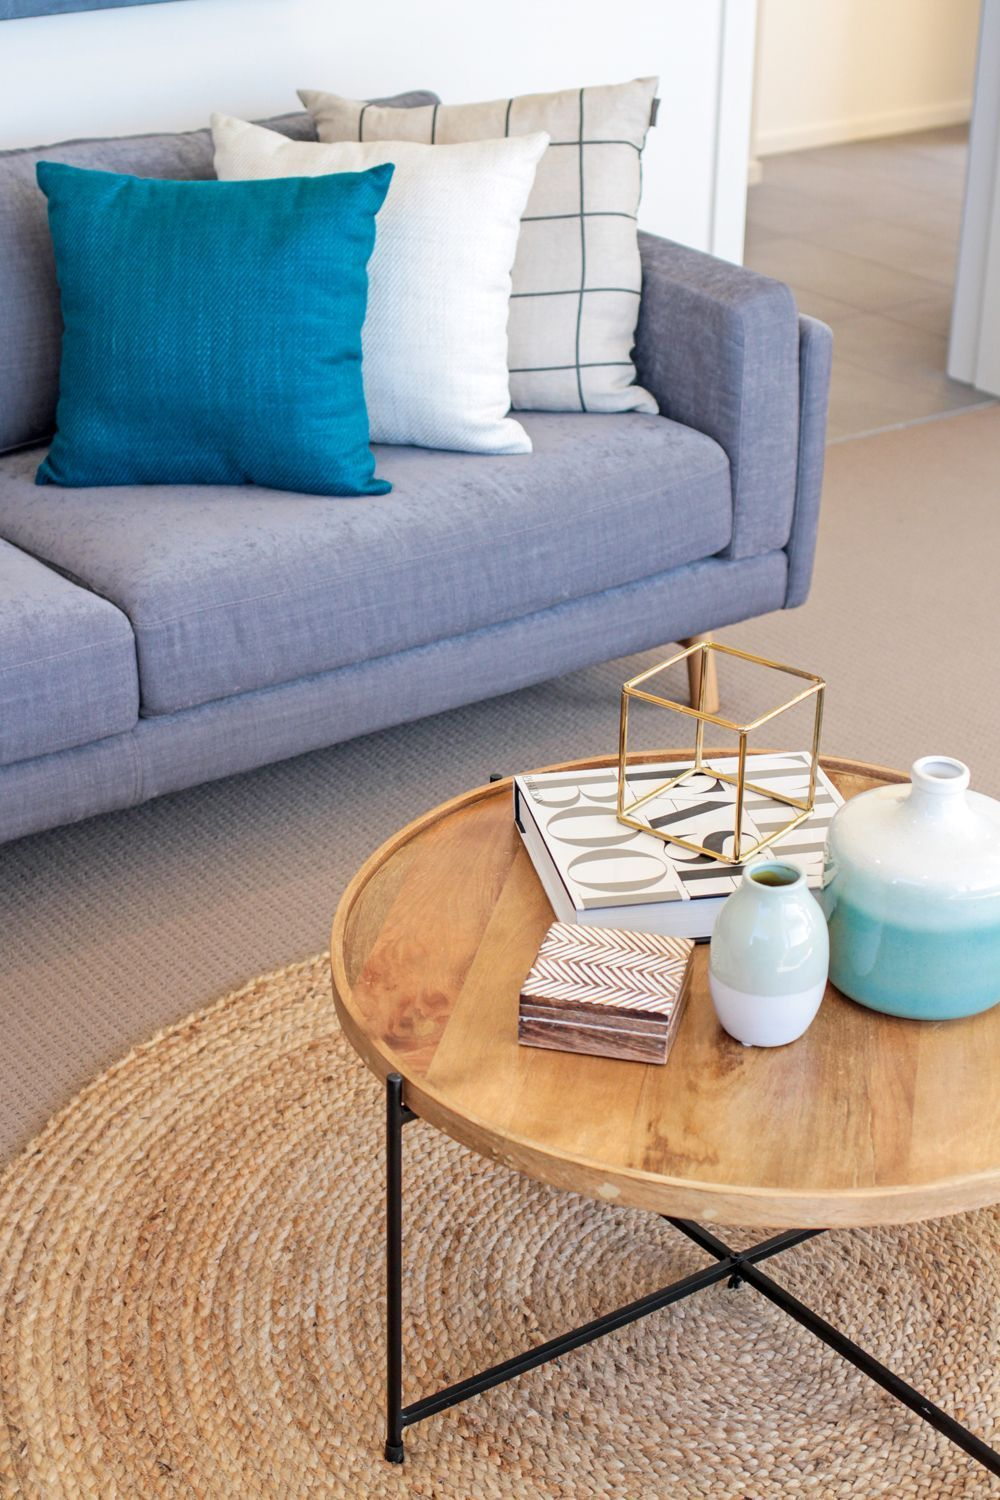 Coffee Table Styling Grey Sofa Scatter Cushions Round Jute Rug Round Table Coffee Cushions Grey Jute Coffee Table Jute Round Rug Round Glass Coffee Table [ 1500 x 1000 Pixel ]